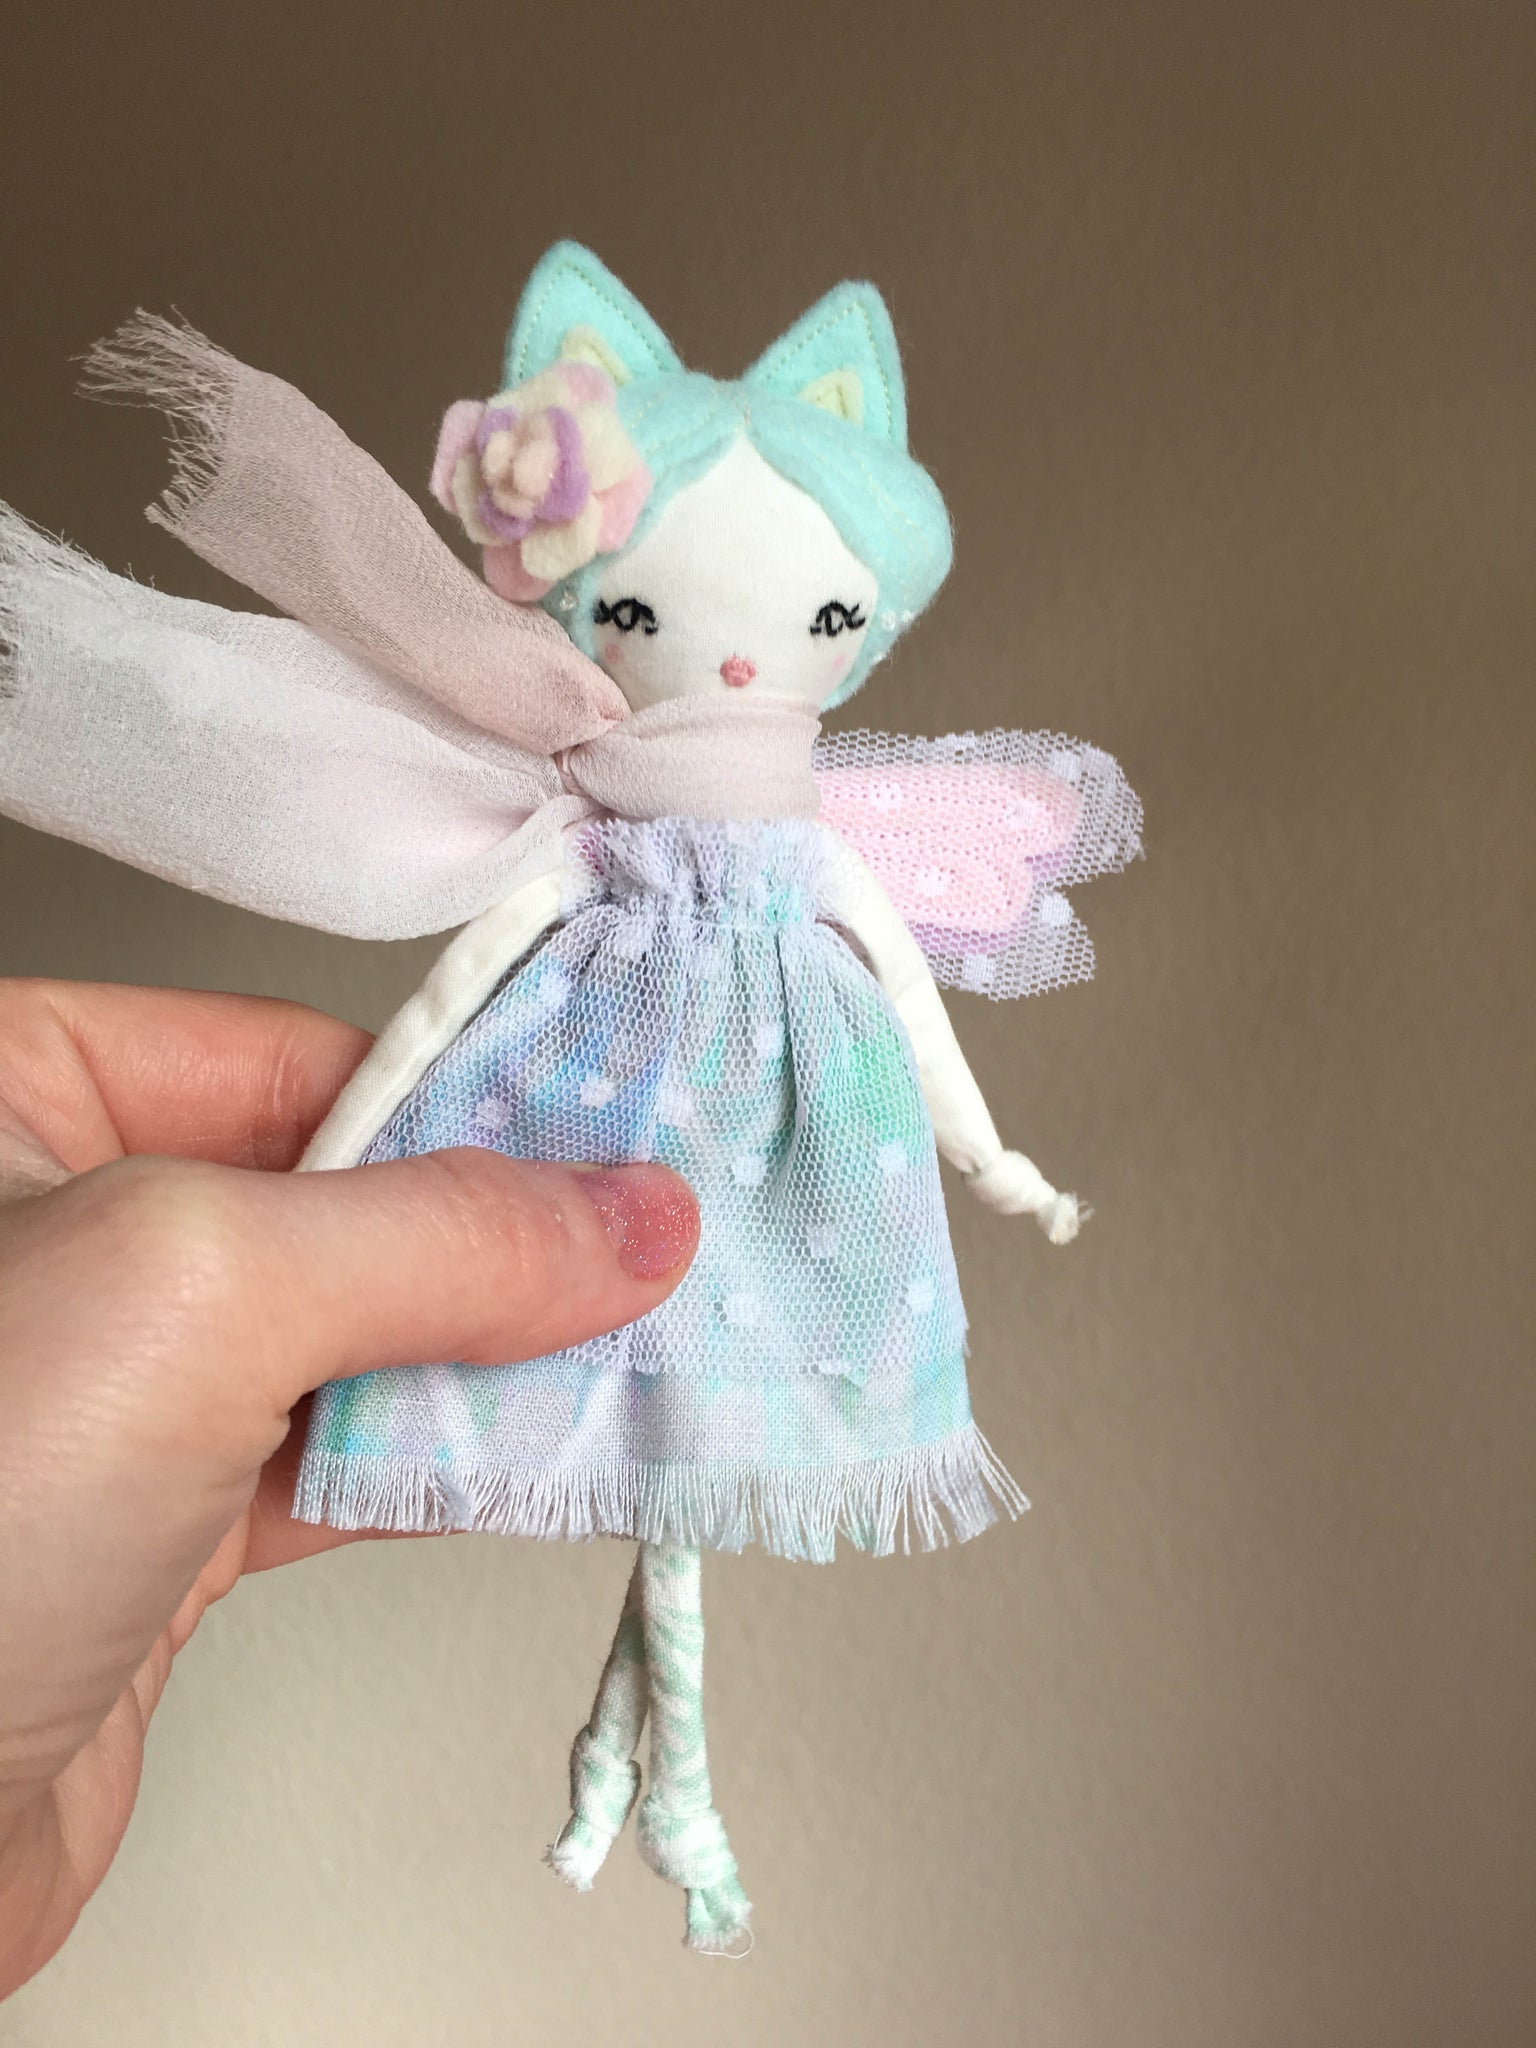 "Tiny Kitty Fairy Doll, About 6.5"" tall"